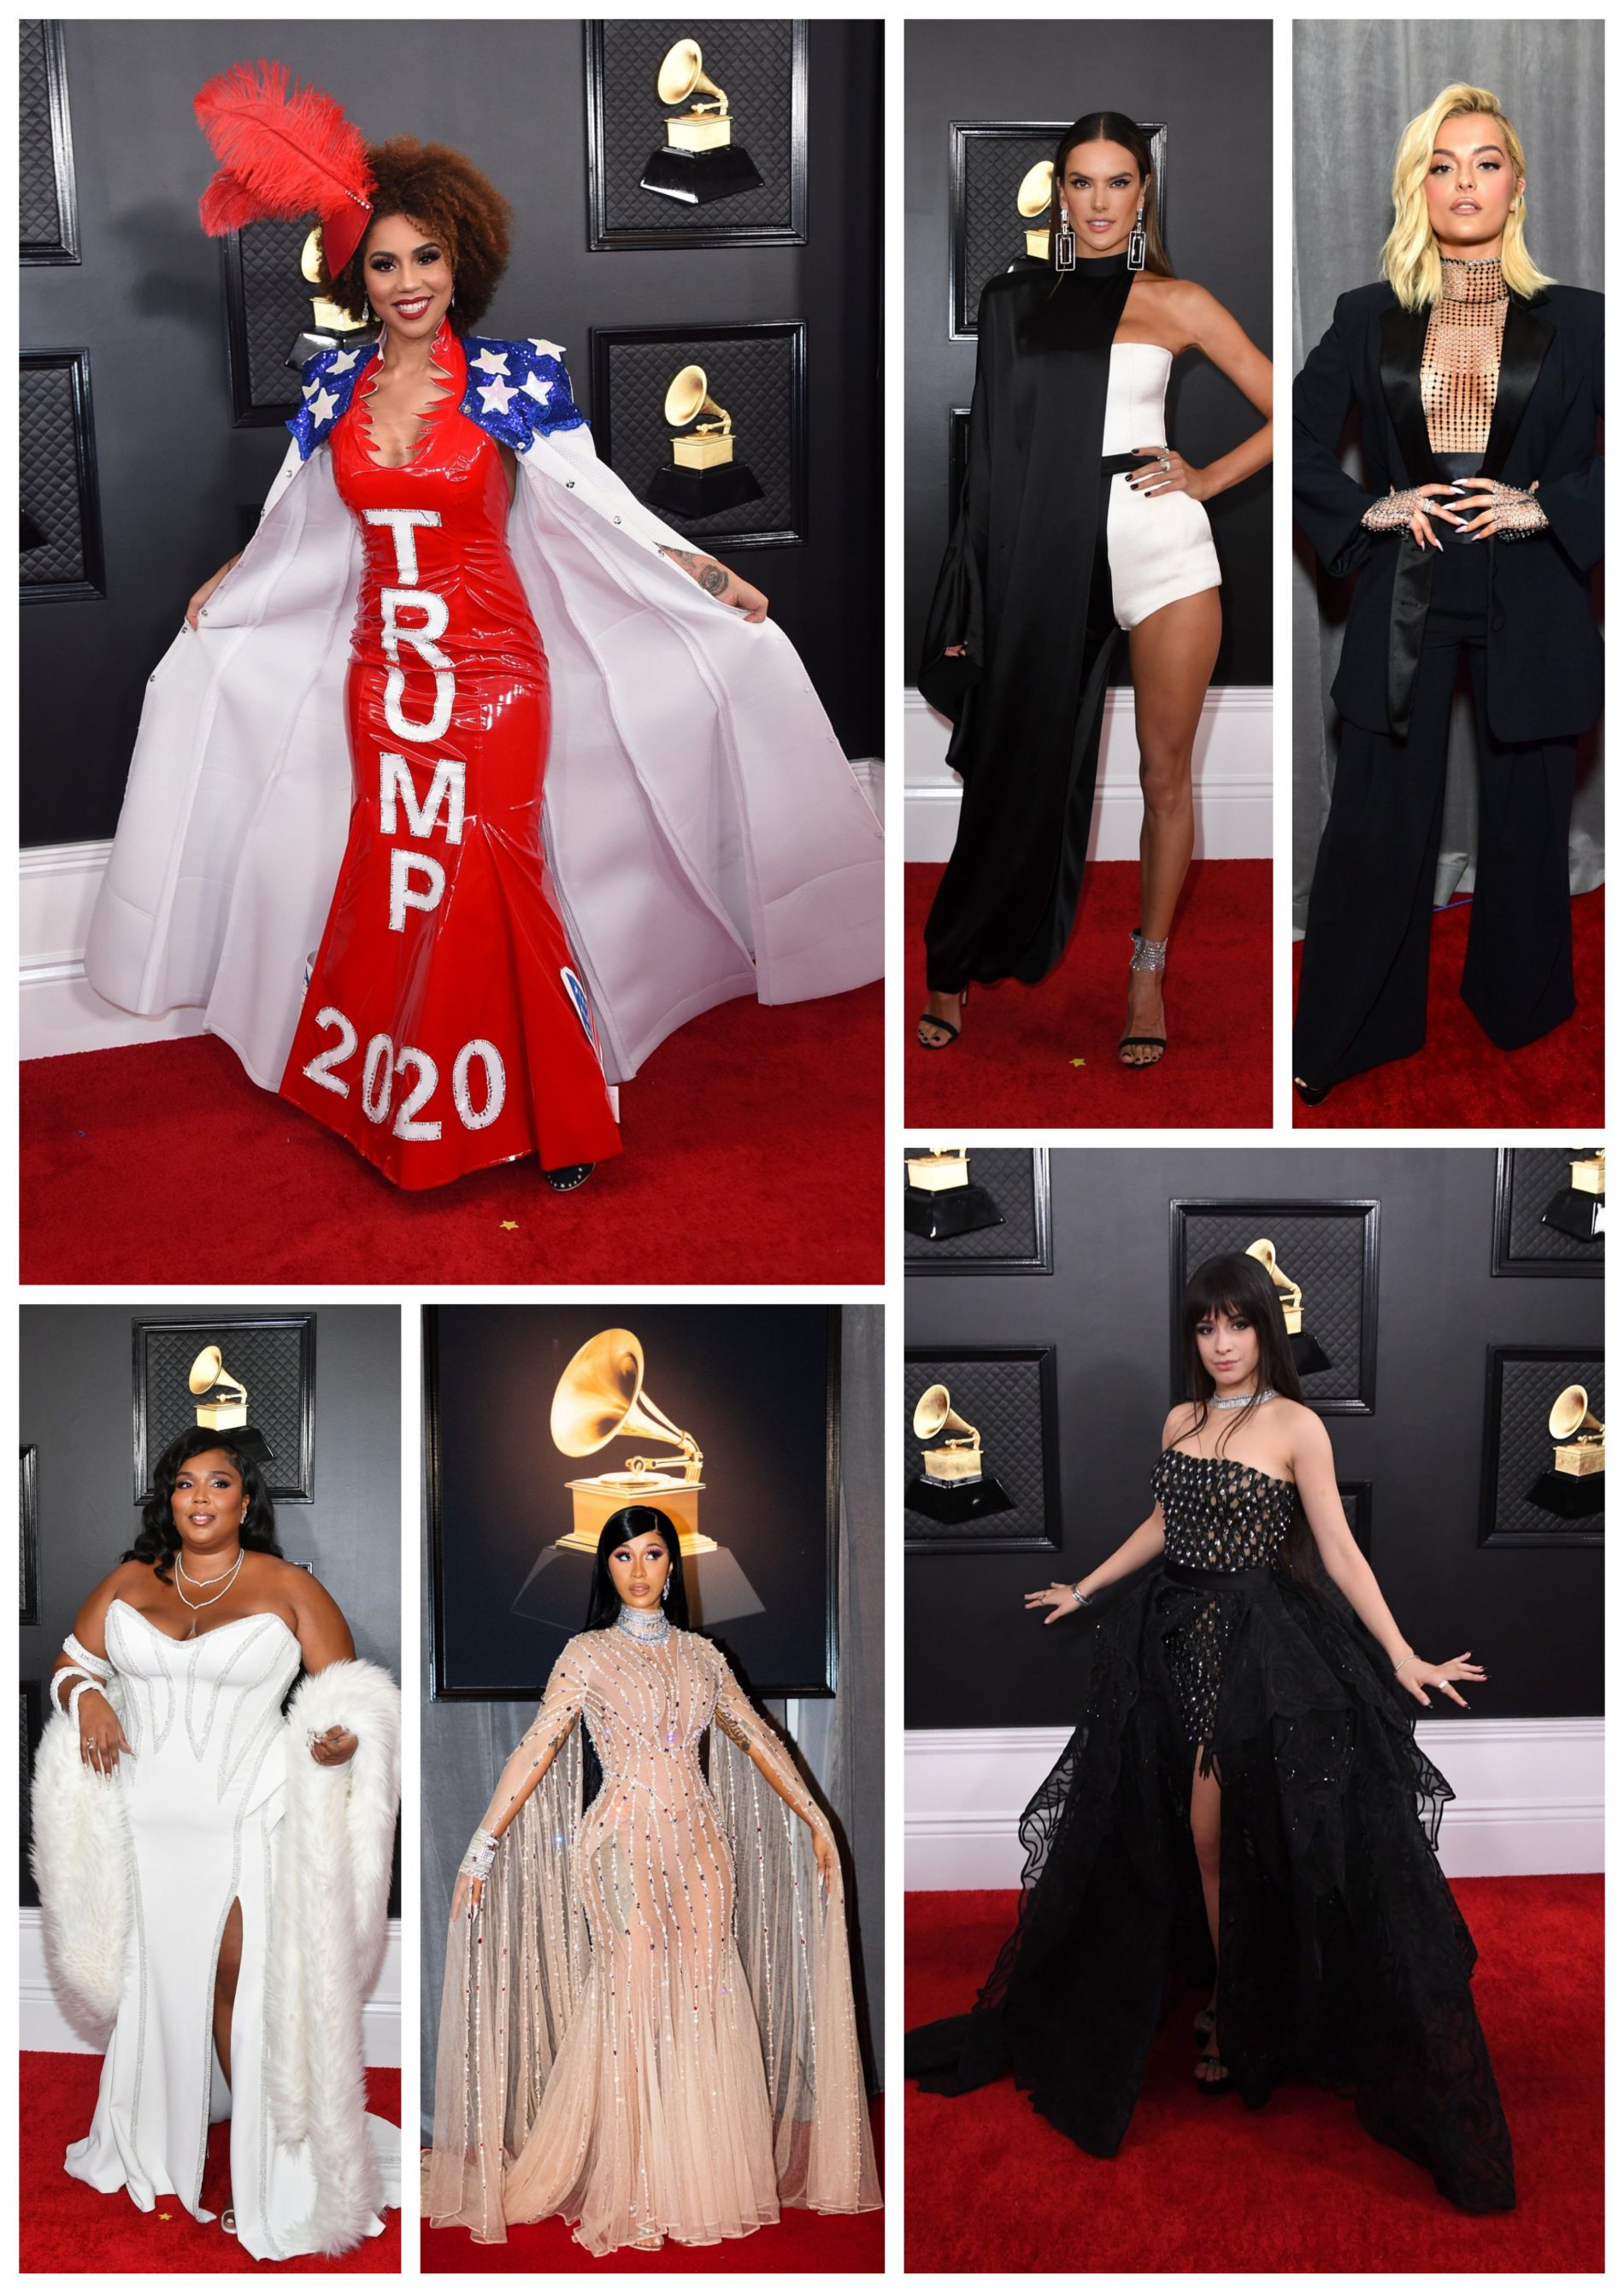 12+ Grammys 2020 Outfits Best And Worst